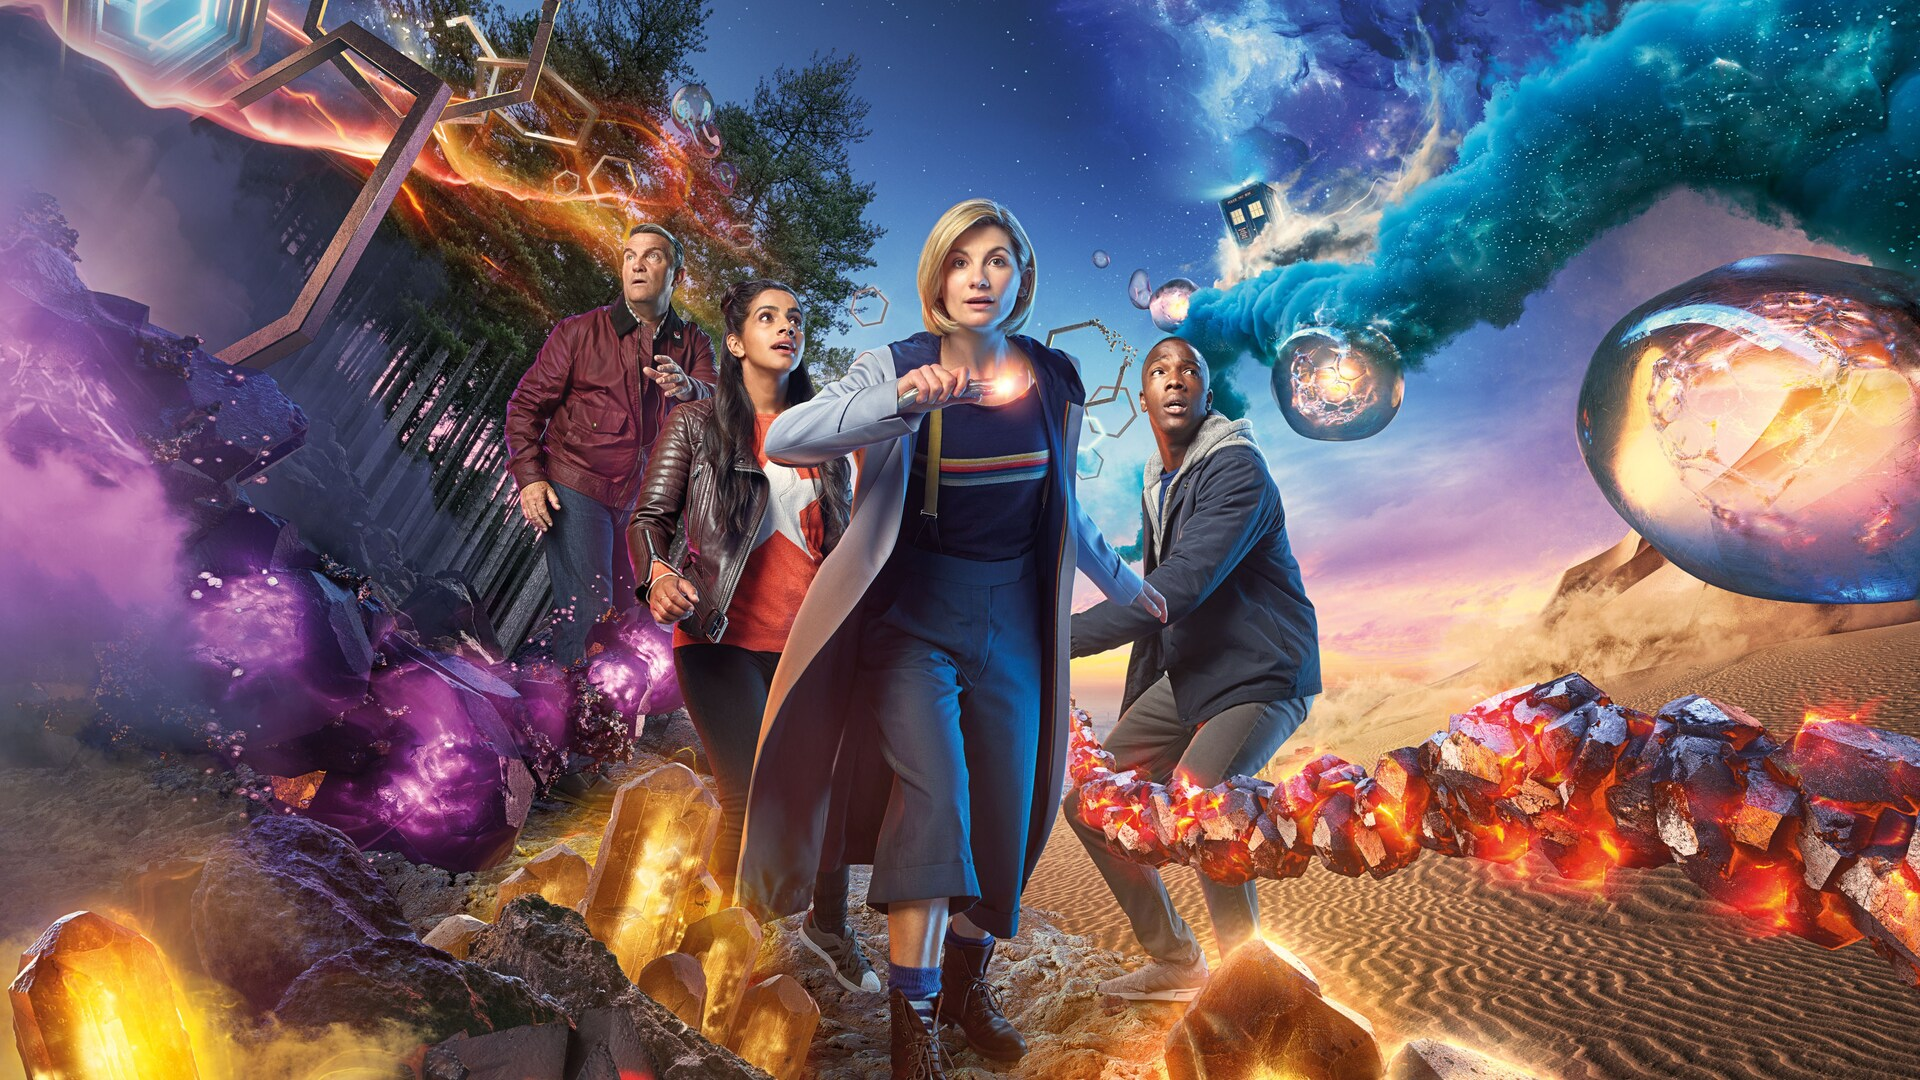 1920x1080 Doctor Who Season 11 4k 2018 Laptop Full Hd 1080p Hd 4k